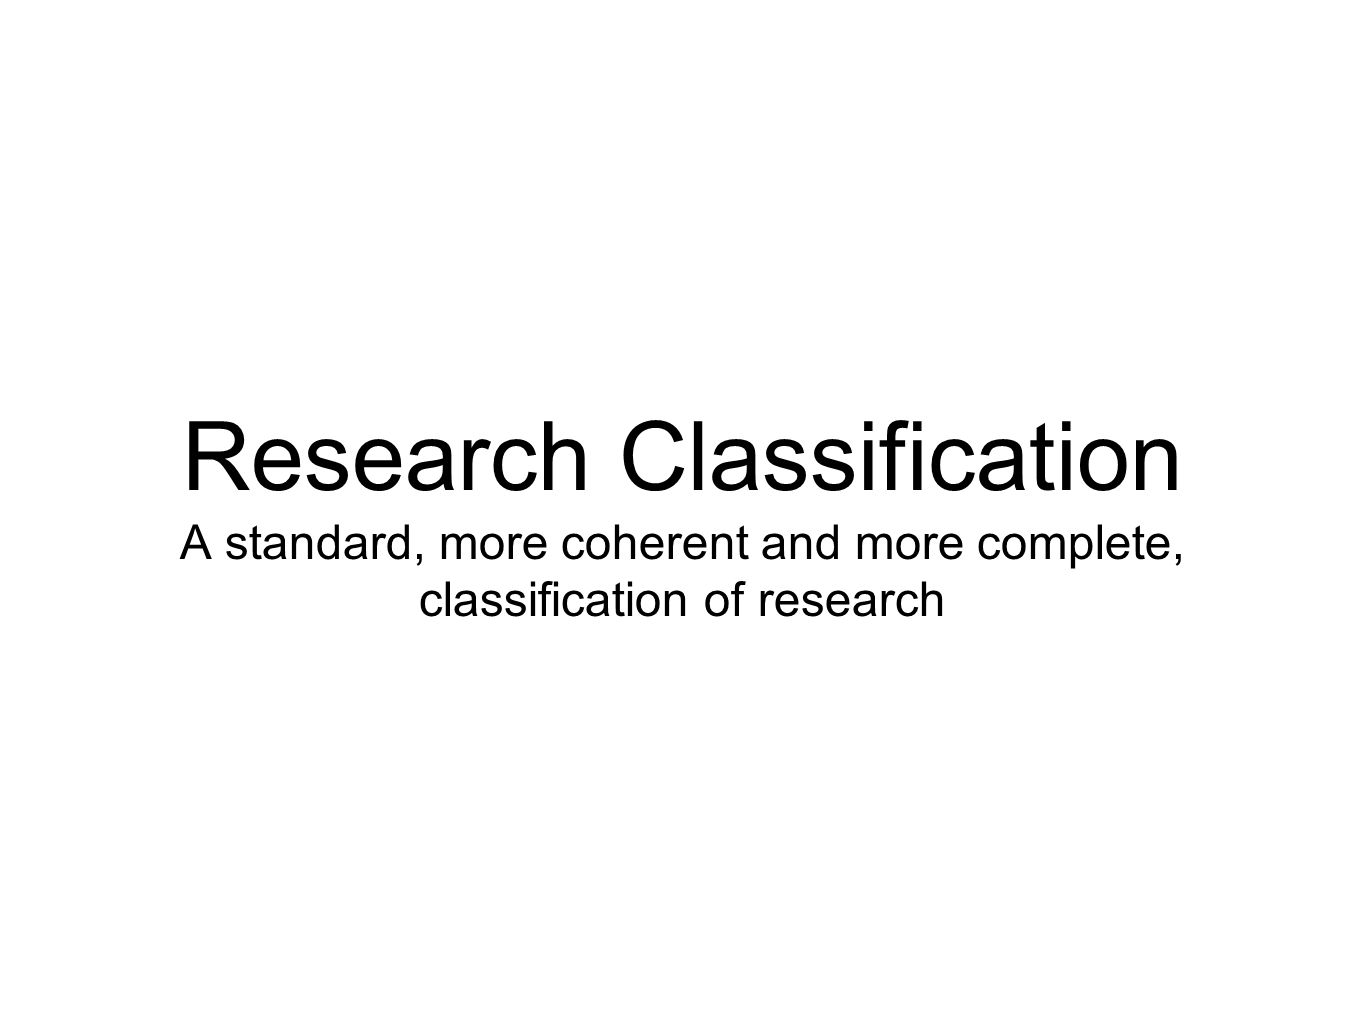 Research Classification A standard, more coherent and more complete, classification of research